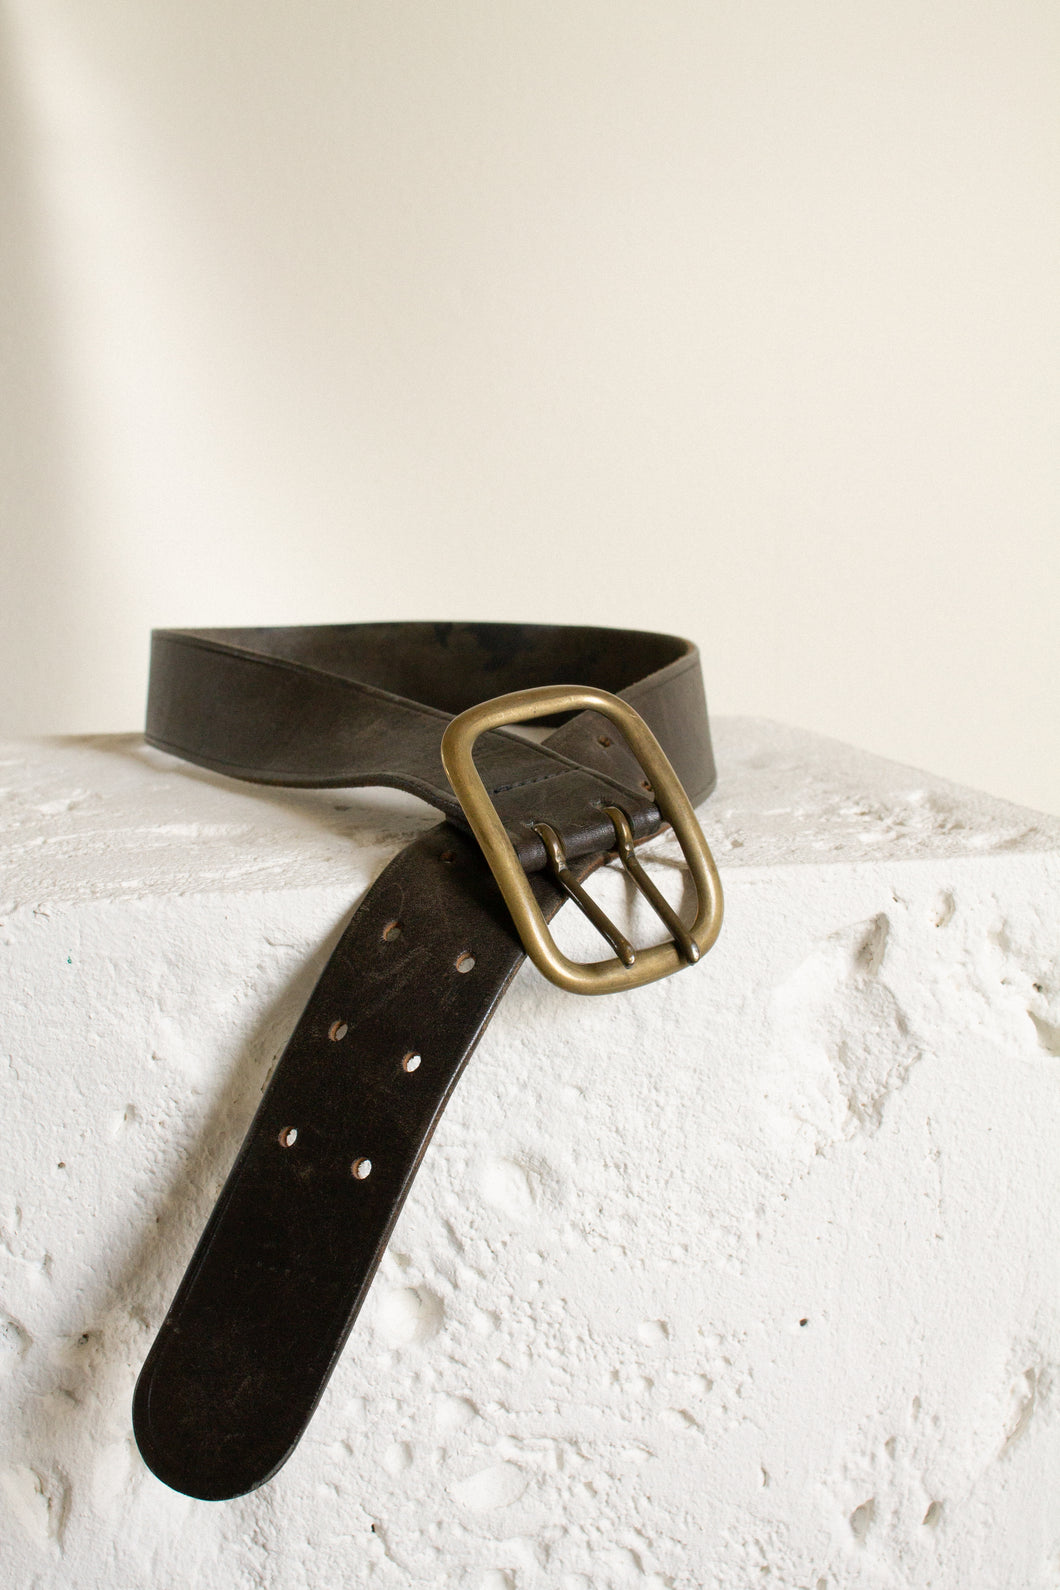 Vintage brown leather double prong brass buckle belt // 29-35.5